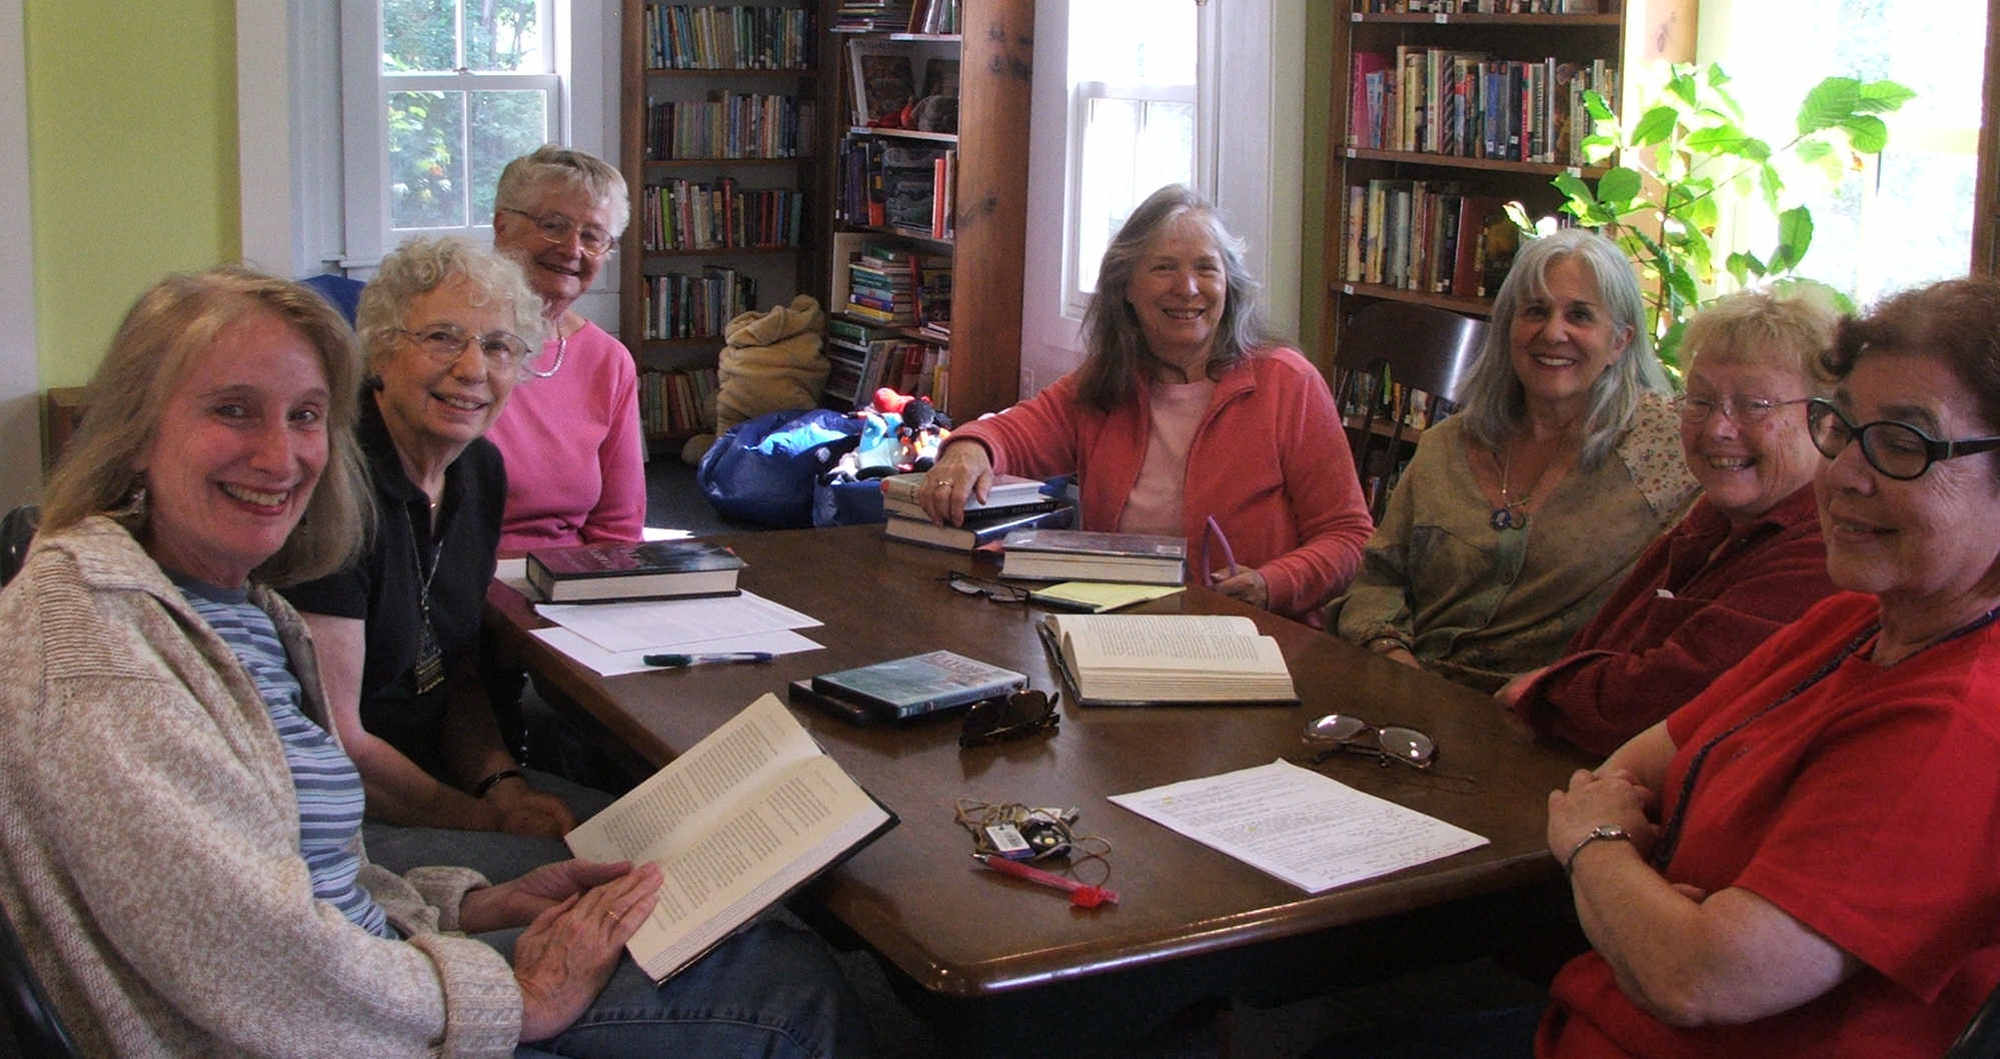 Leigh Infield, Phyllis Galowitz, Buffy Calvert, Garnette Arledge, Judy Garrison, Joi Brundege and Rima Walker share thoughts on one of the selected books